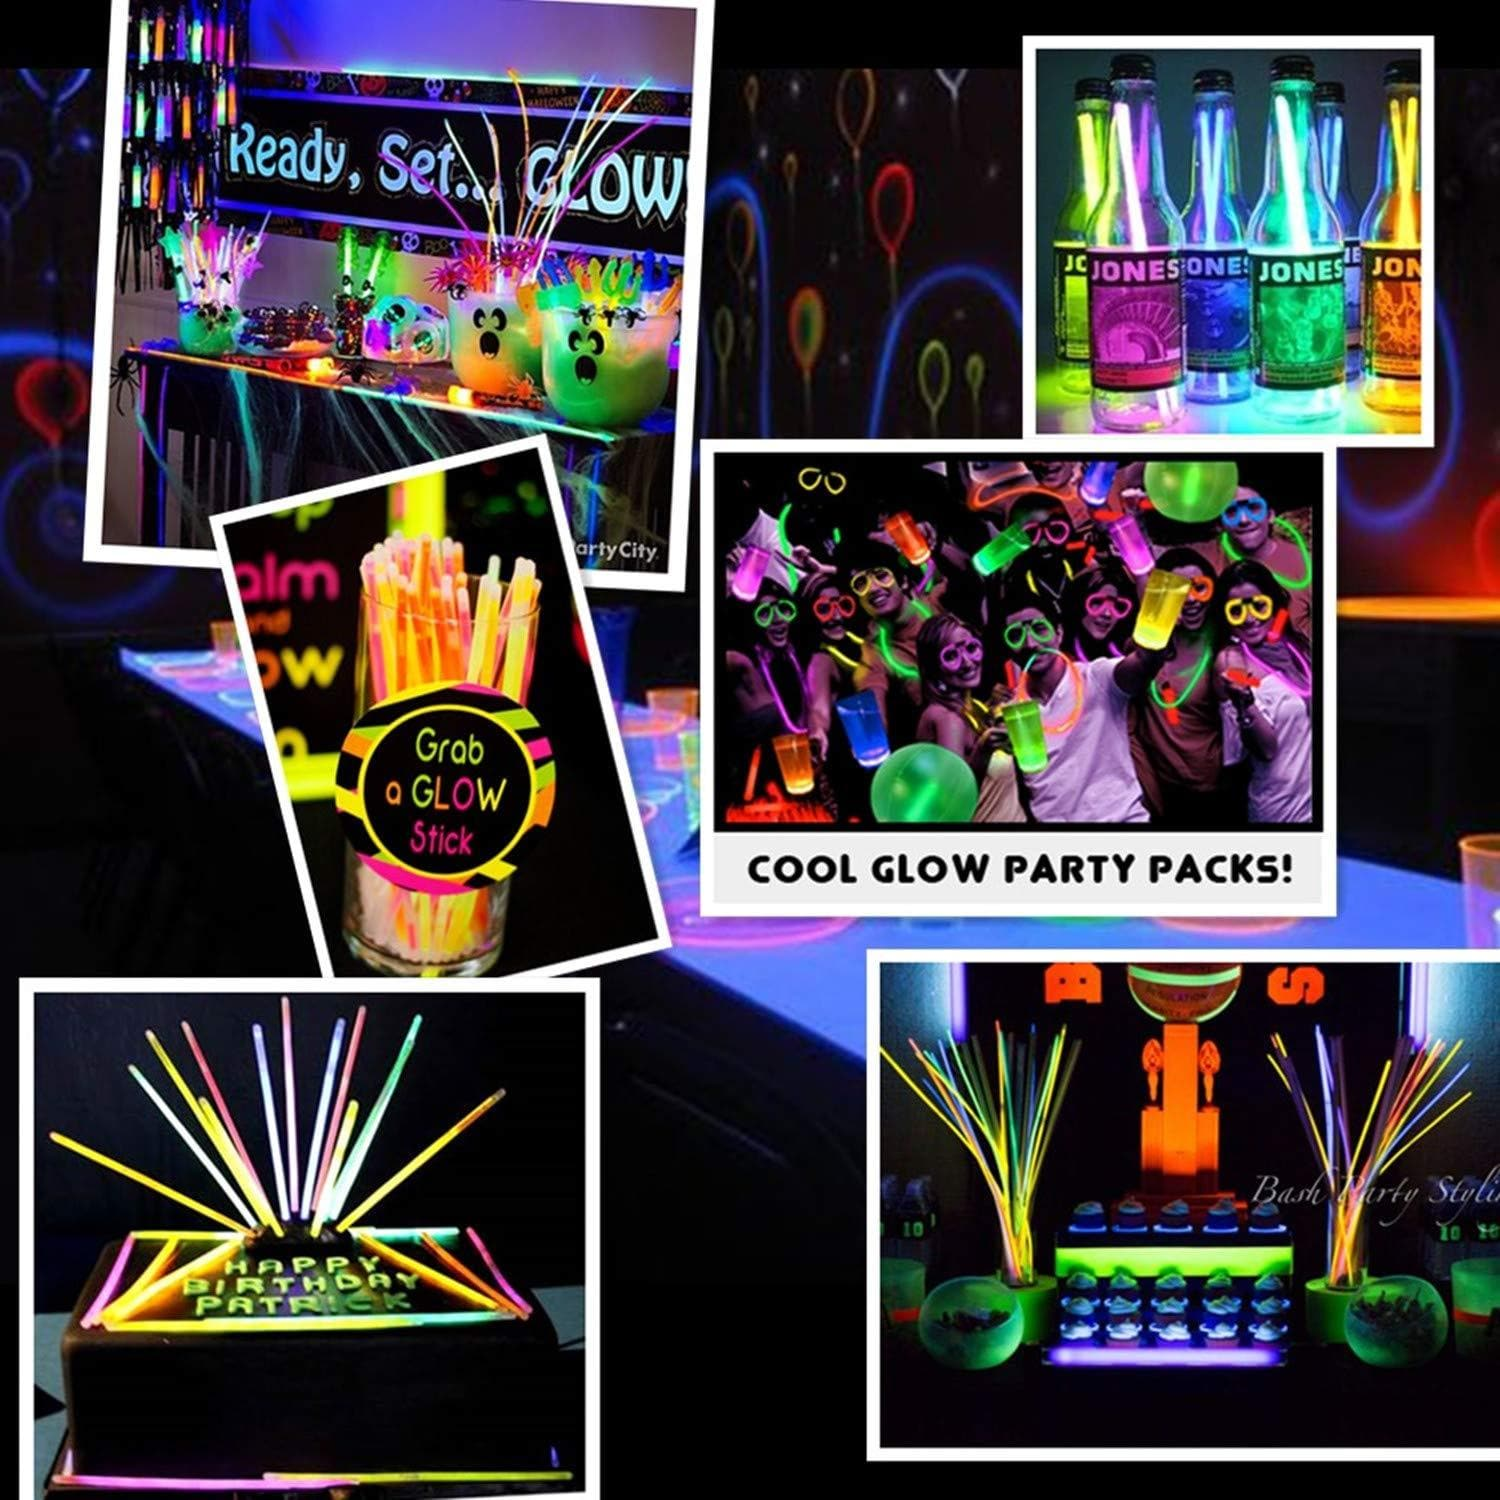 WisToyz Glow Sticks, Glow Stick Party Pack Toys